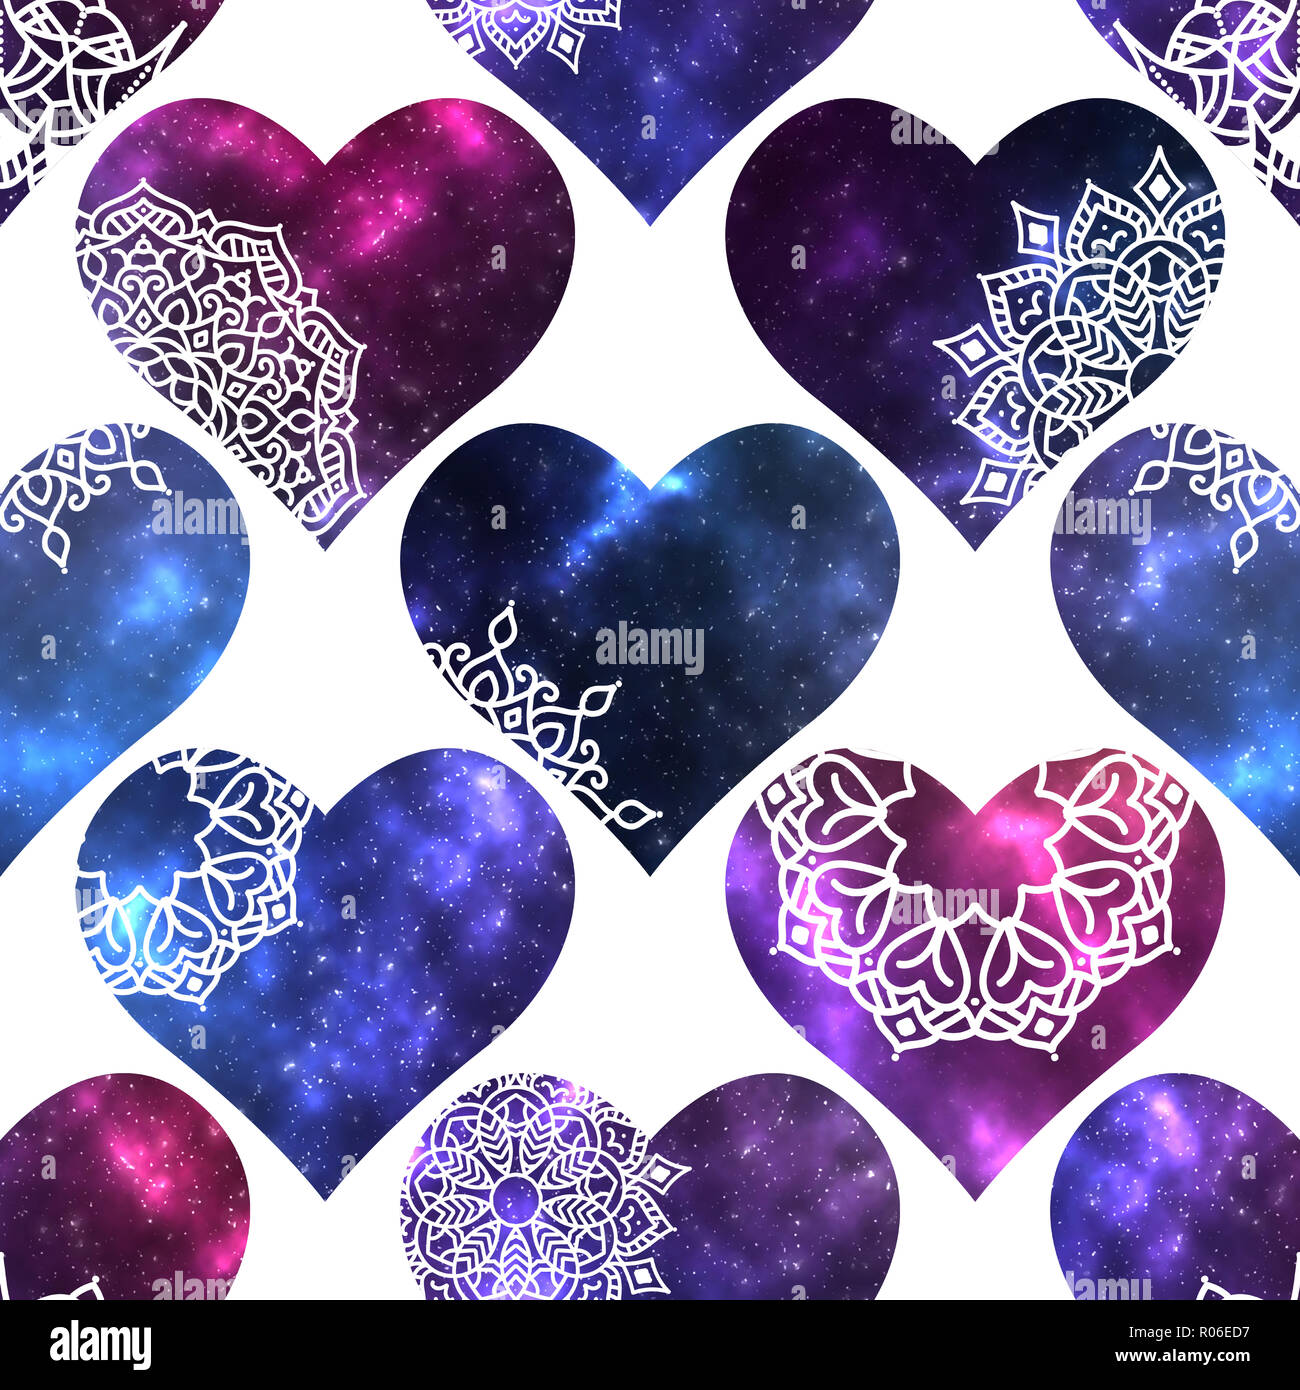 Seamless pattern with hearts shapes with cosmic texture and